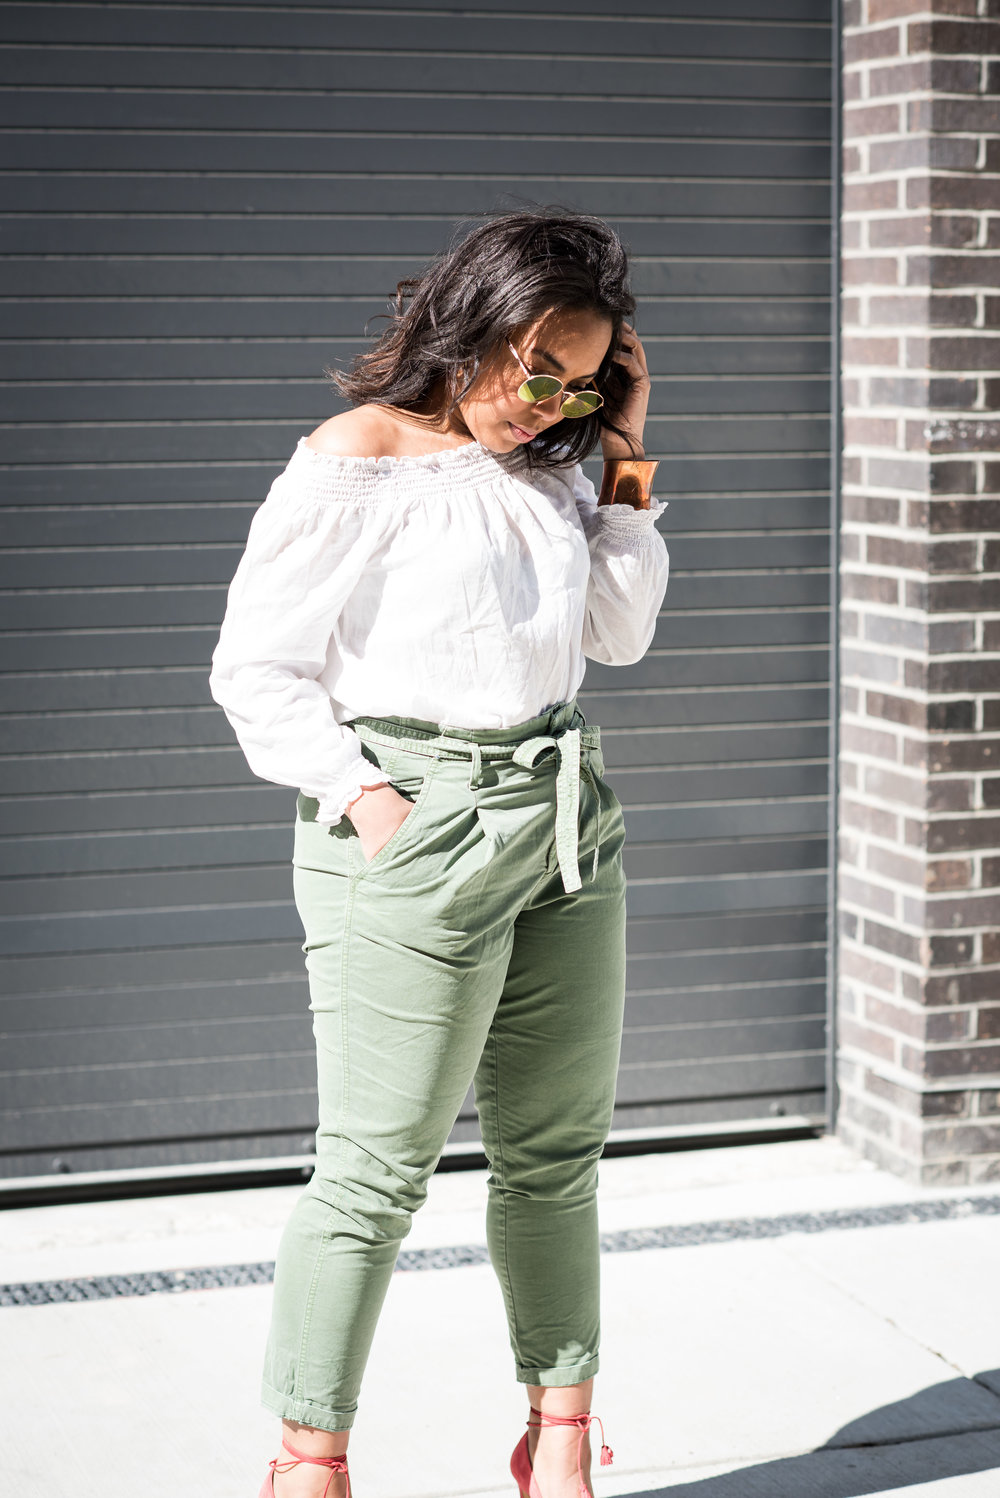 gap-paper-bag-waist-chinos-off-the-shoulder-blouse-jcrew-tassle-pumps-round-sunglasses-urban-outfitters-spring-fashion-7.JPG